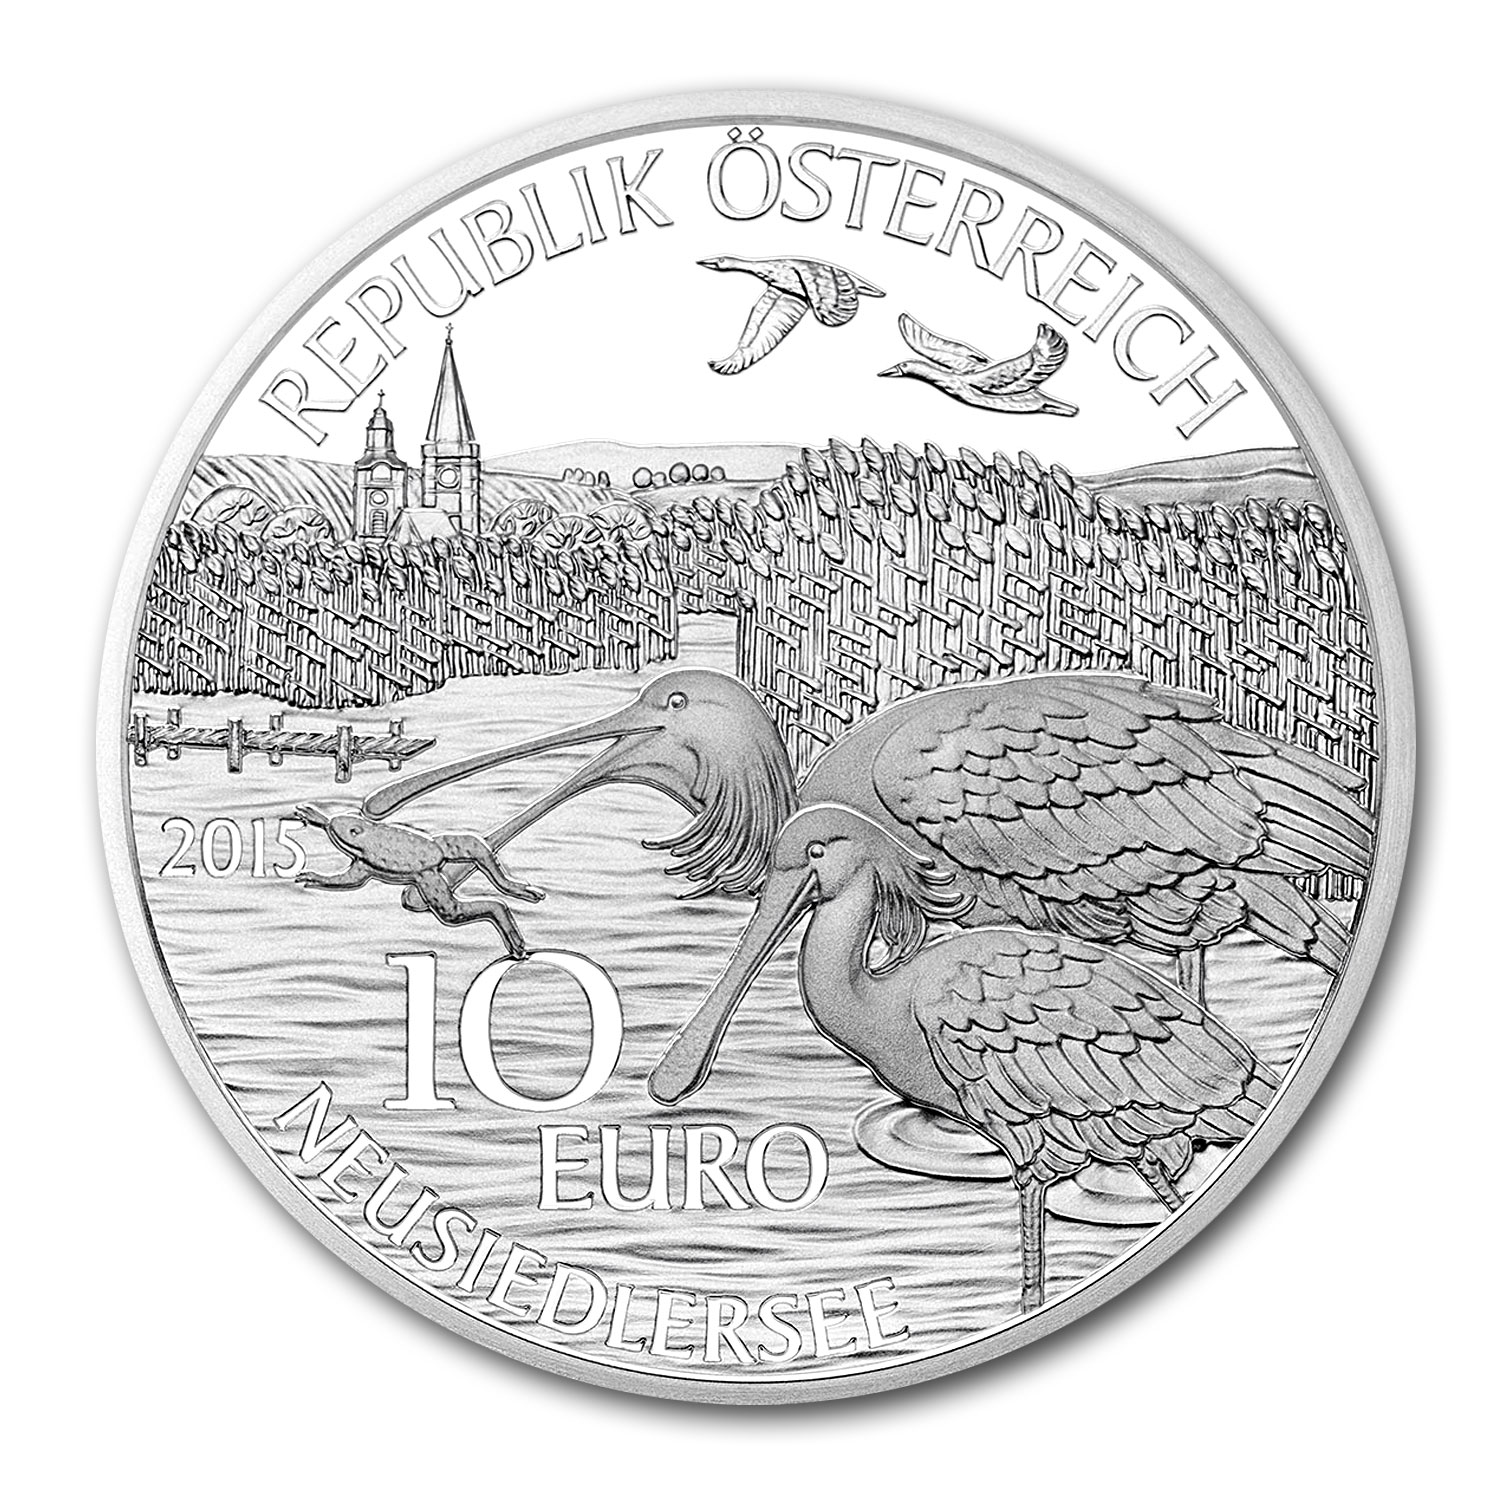 2015 Austria Proof Silver €10 Piece by Piece (Burgenland)